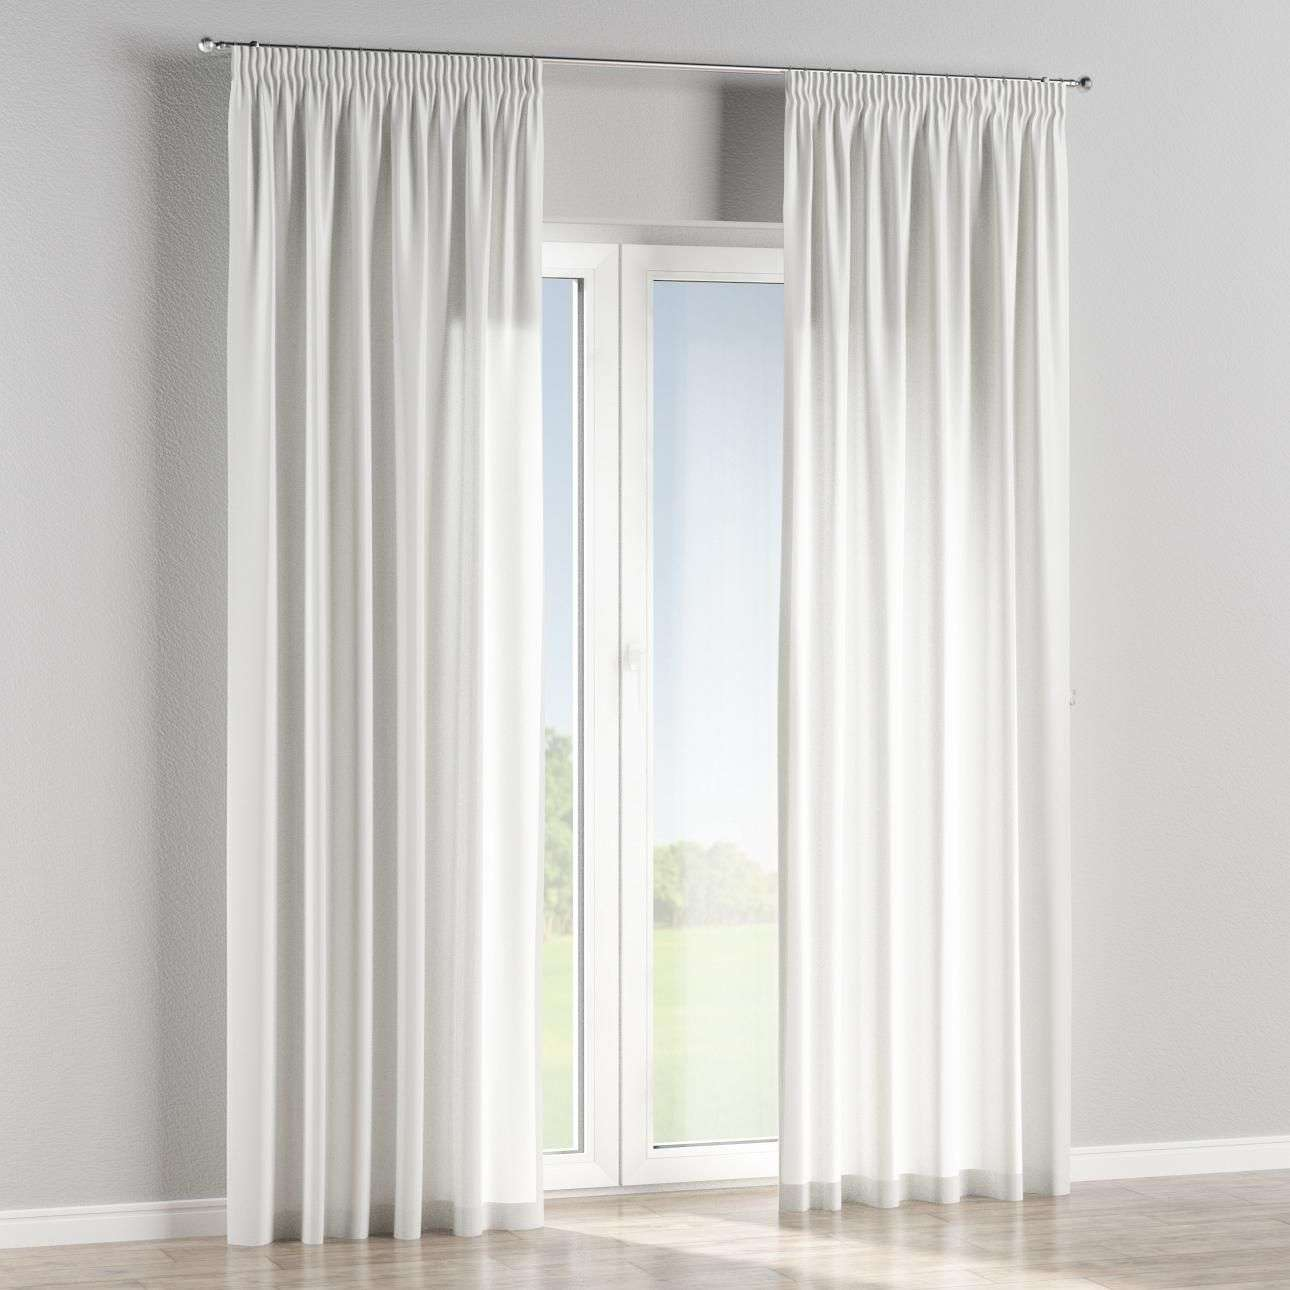 Pencil pleat curtains in collection Norge, fabric: 150-19